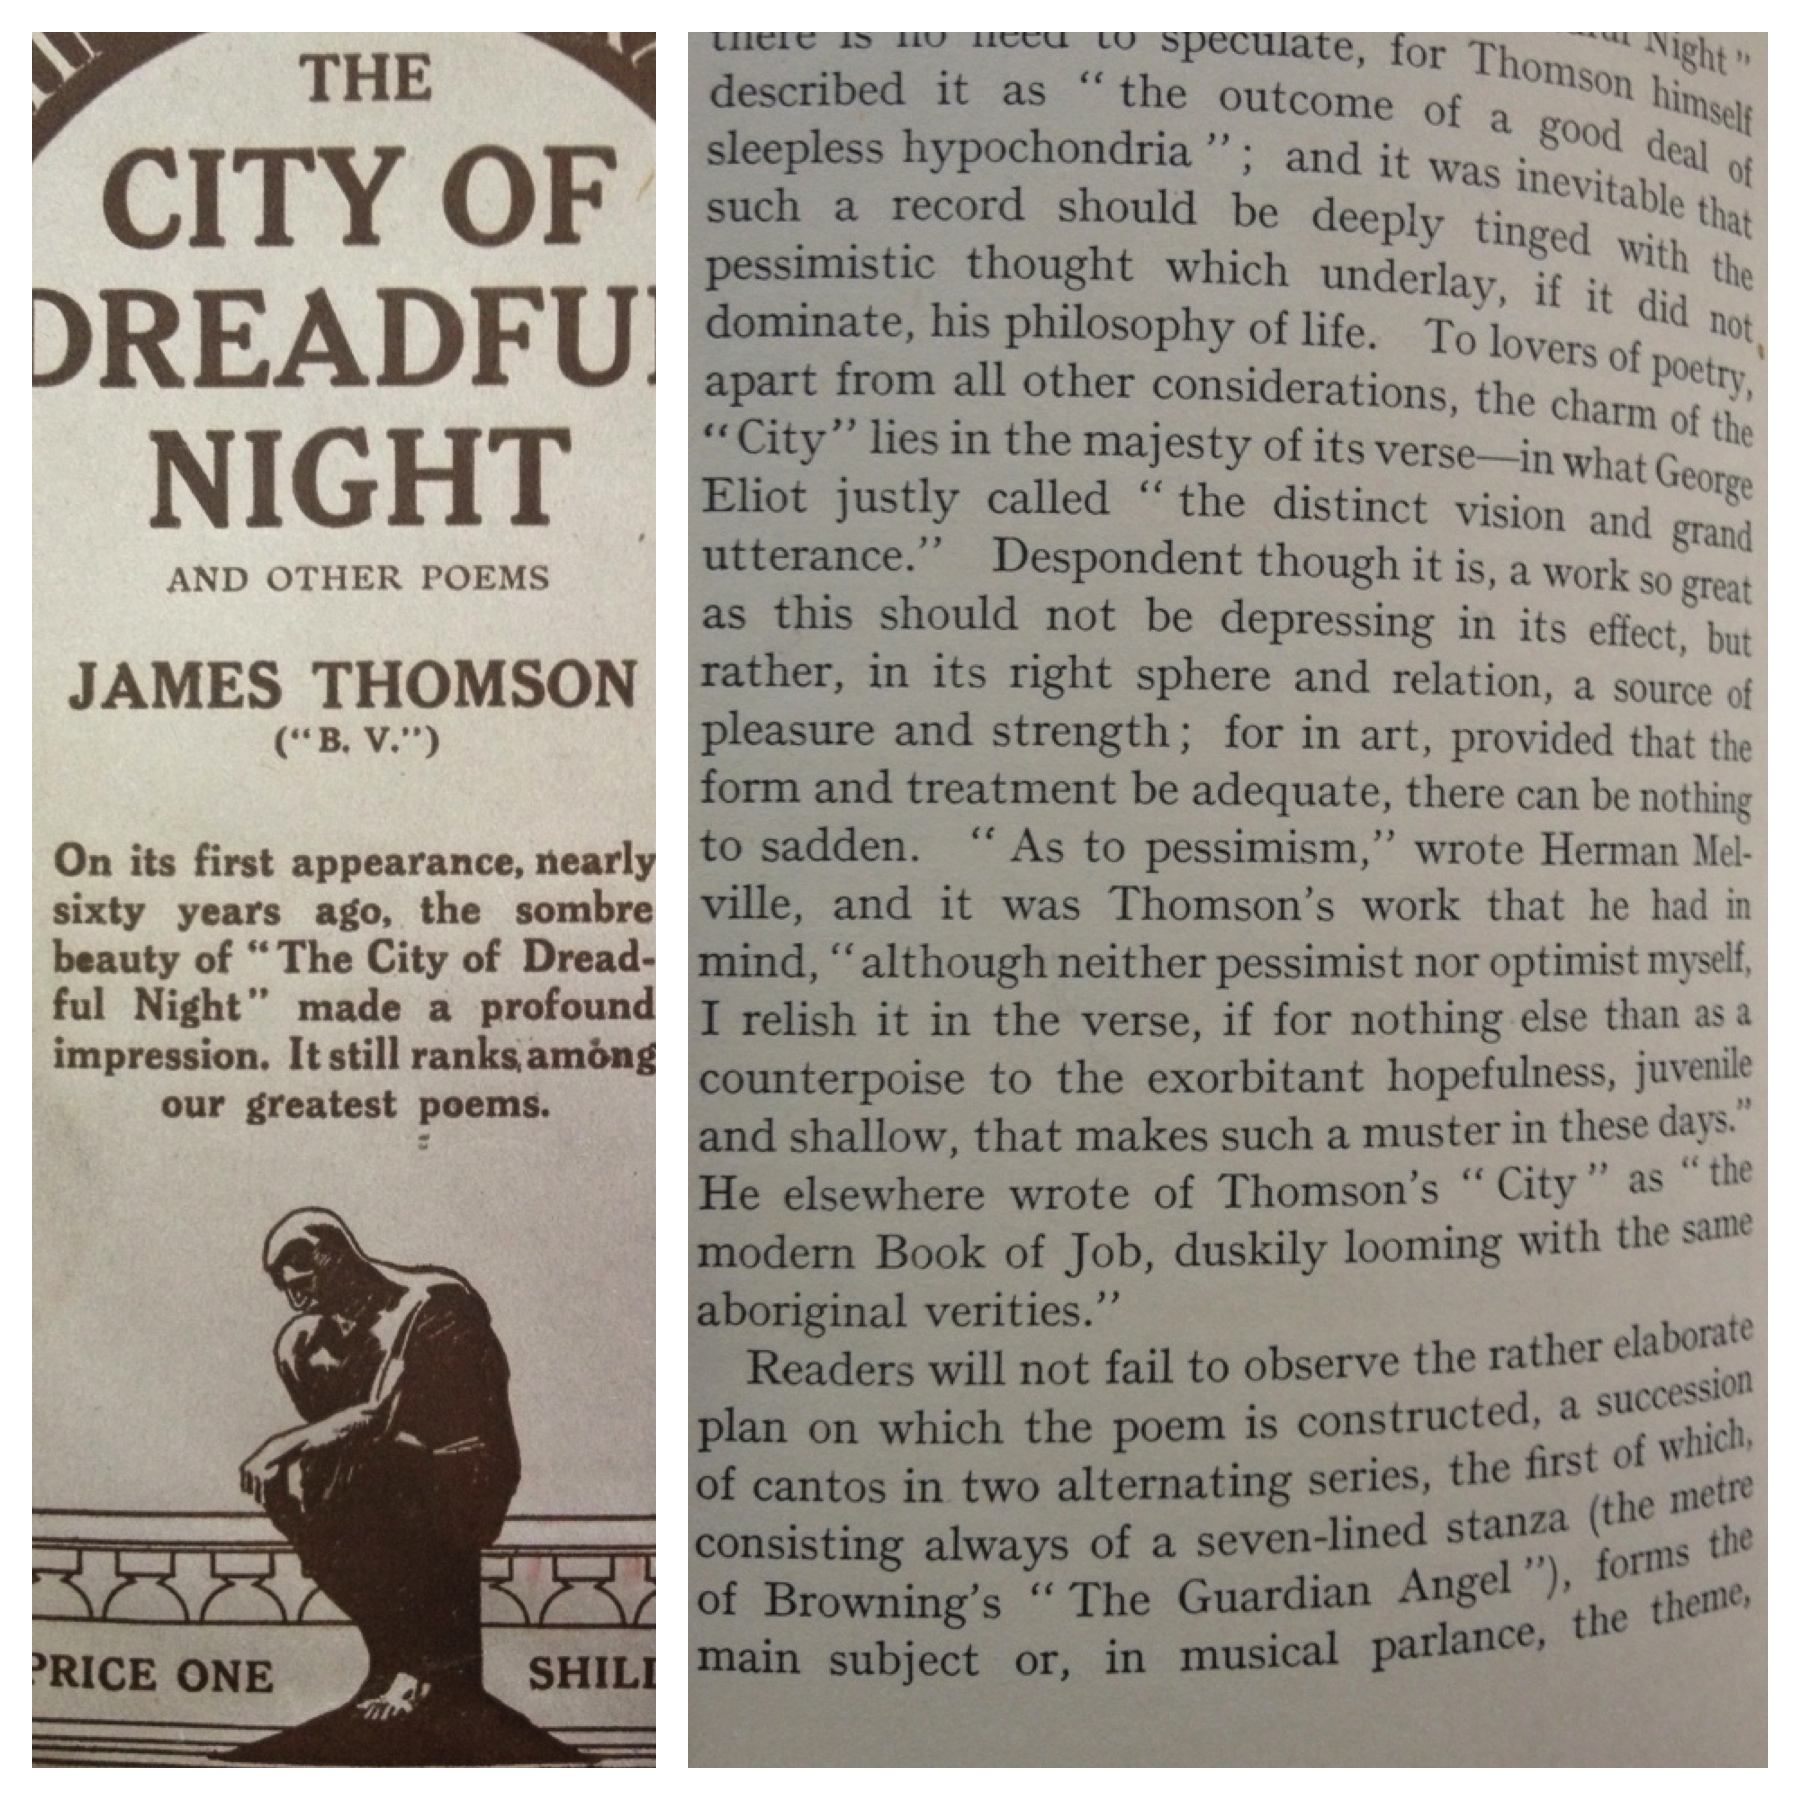 Curiosity - The City of Dreadful Night said to be the most depressing poem ever.  Delightful text - read the Melville quote.